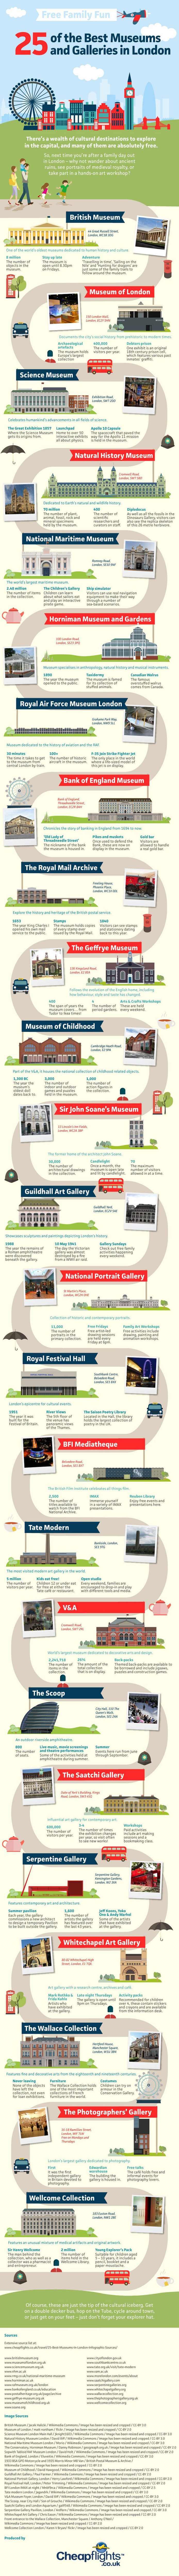 #Travel #tips: 25 Free Things to do in #London  #Infographic